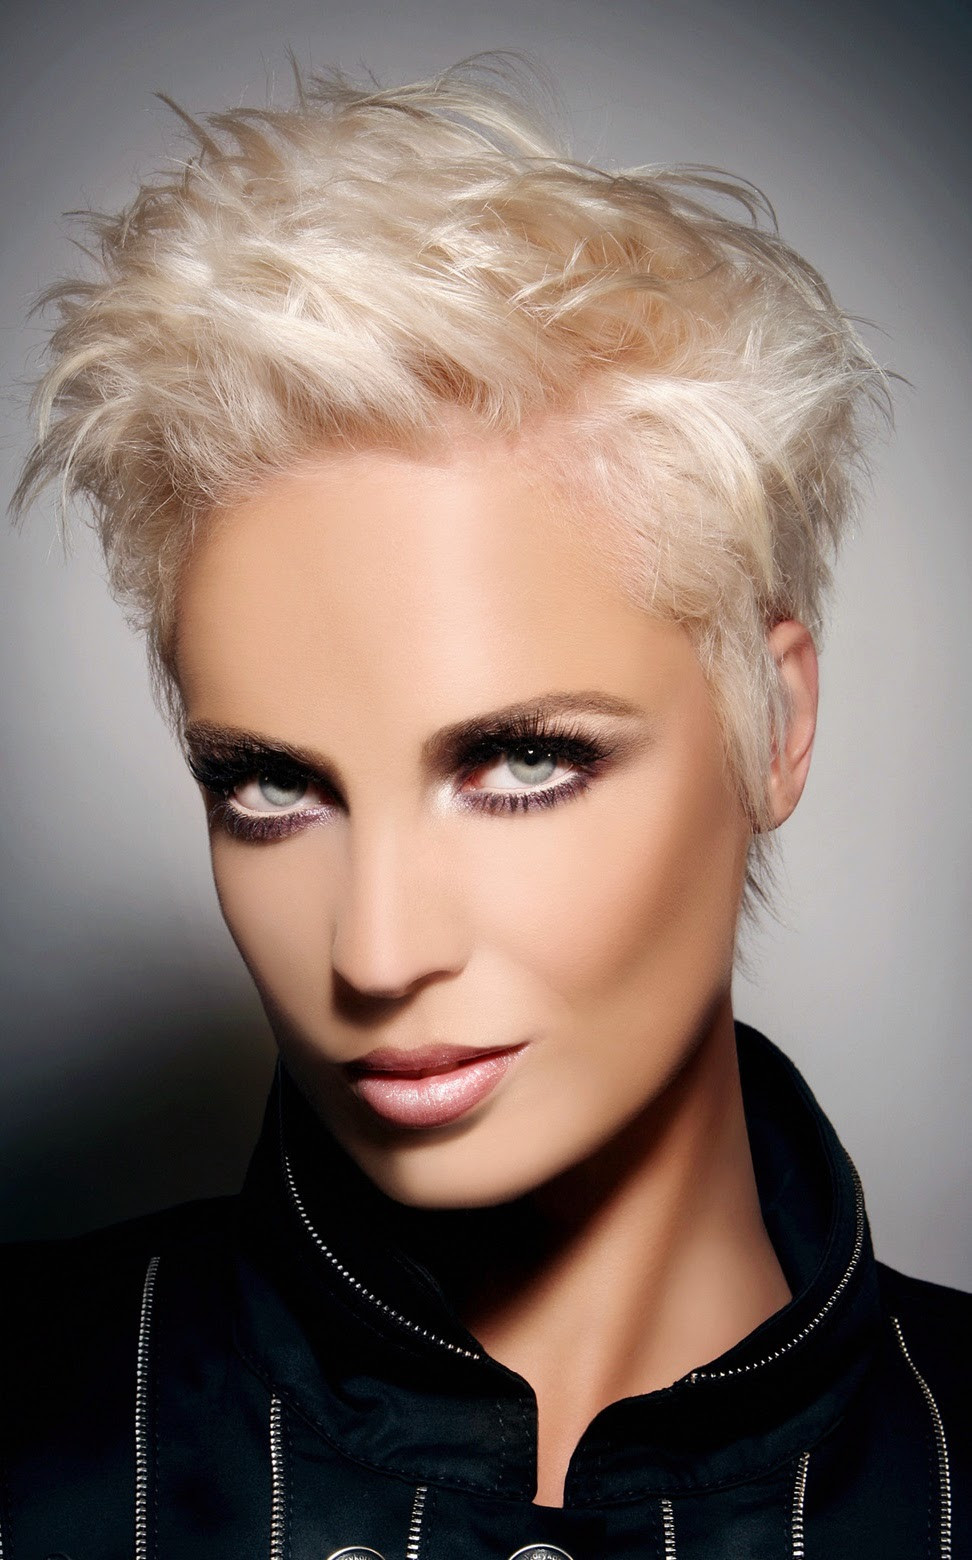 30 very short pixie haircuts for women short hairstyles 25 hottest pixie haircuts for short hair hairstyles